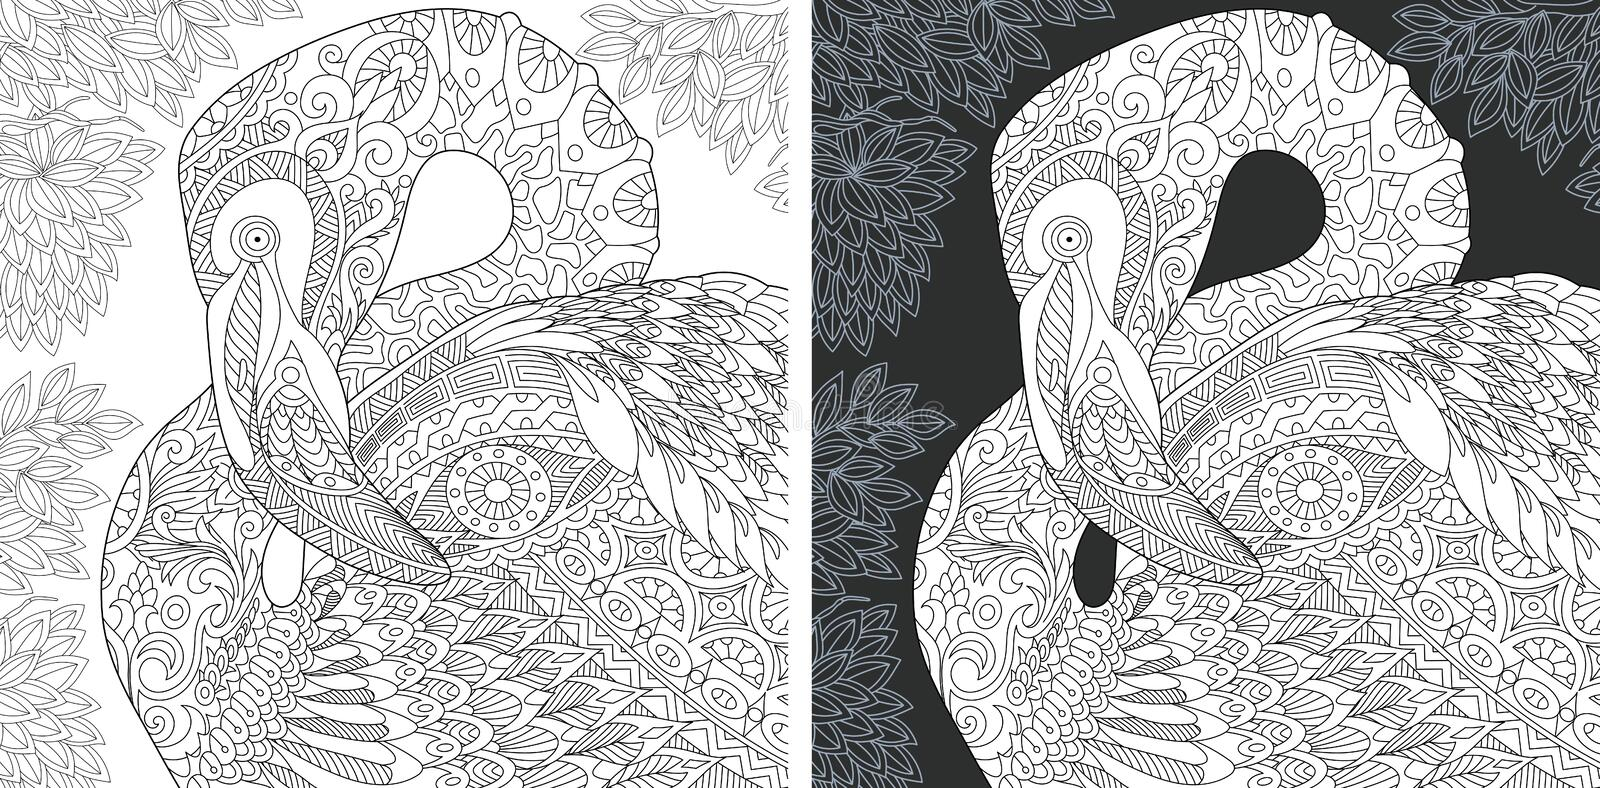 Coloring pages with Flamingo. Coloring Page. Coloring Book. Colouring picture with Flamingo drawn in zentangle style. Antistress freehand sketch drawing. Vector vector illustration